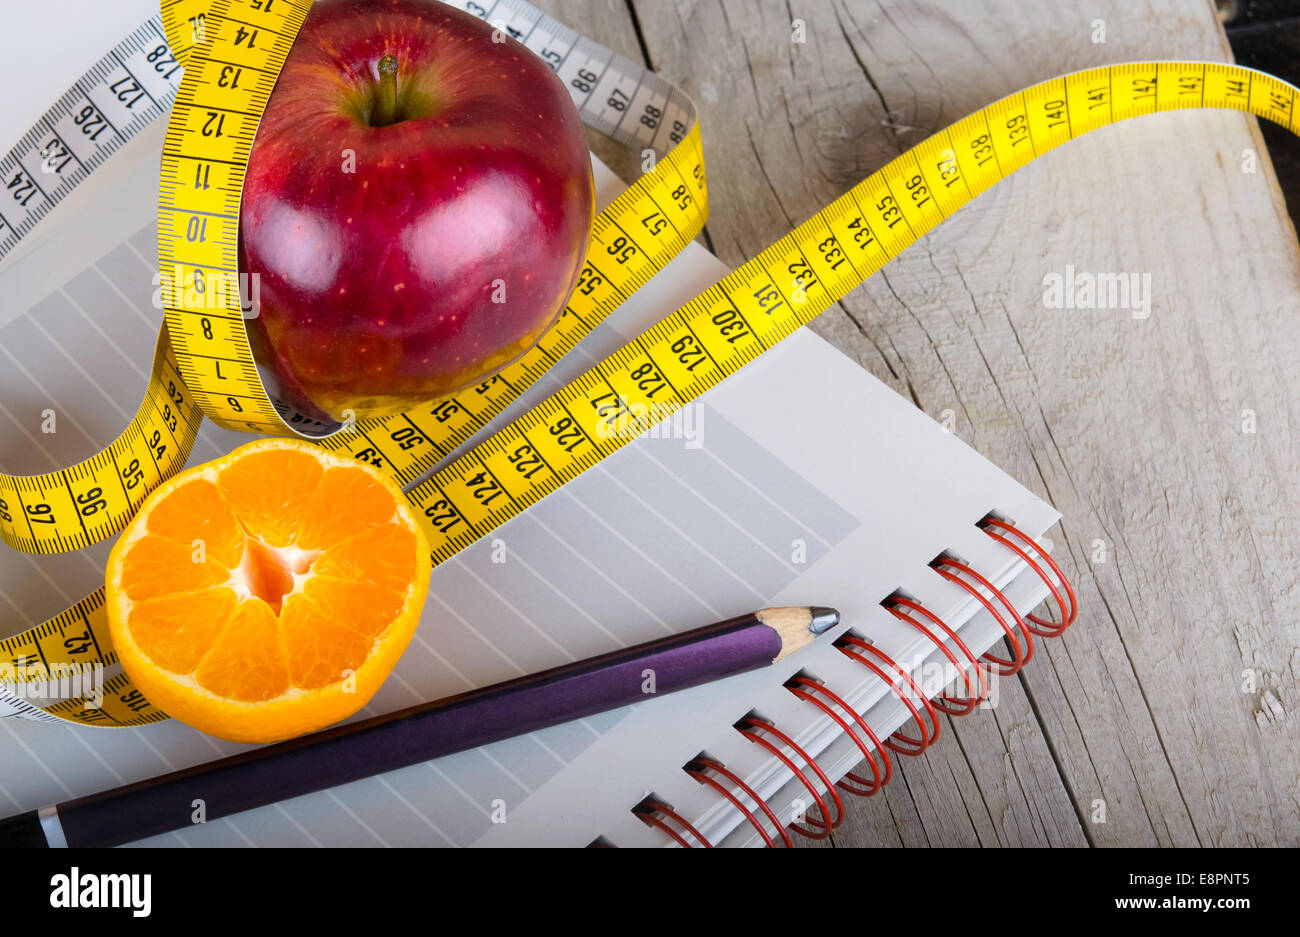 Measuring tape wrapped around a apple weight loss - Stock Image